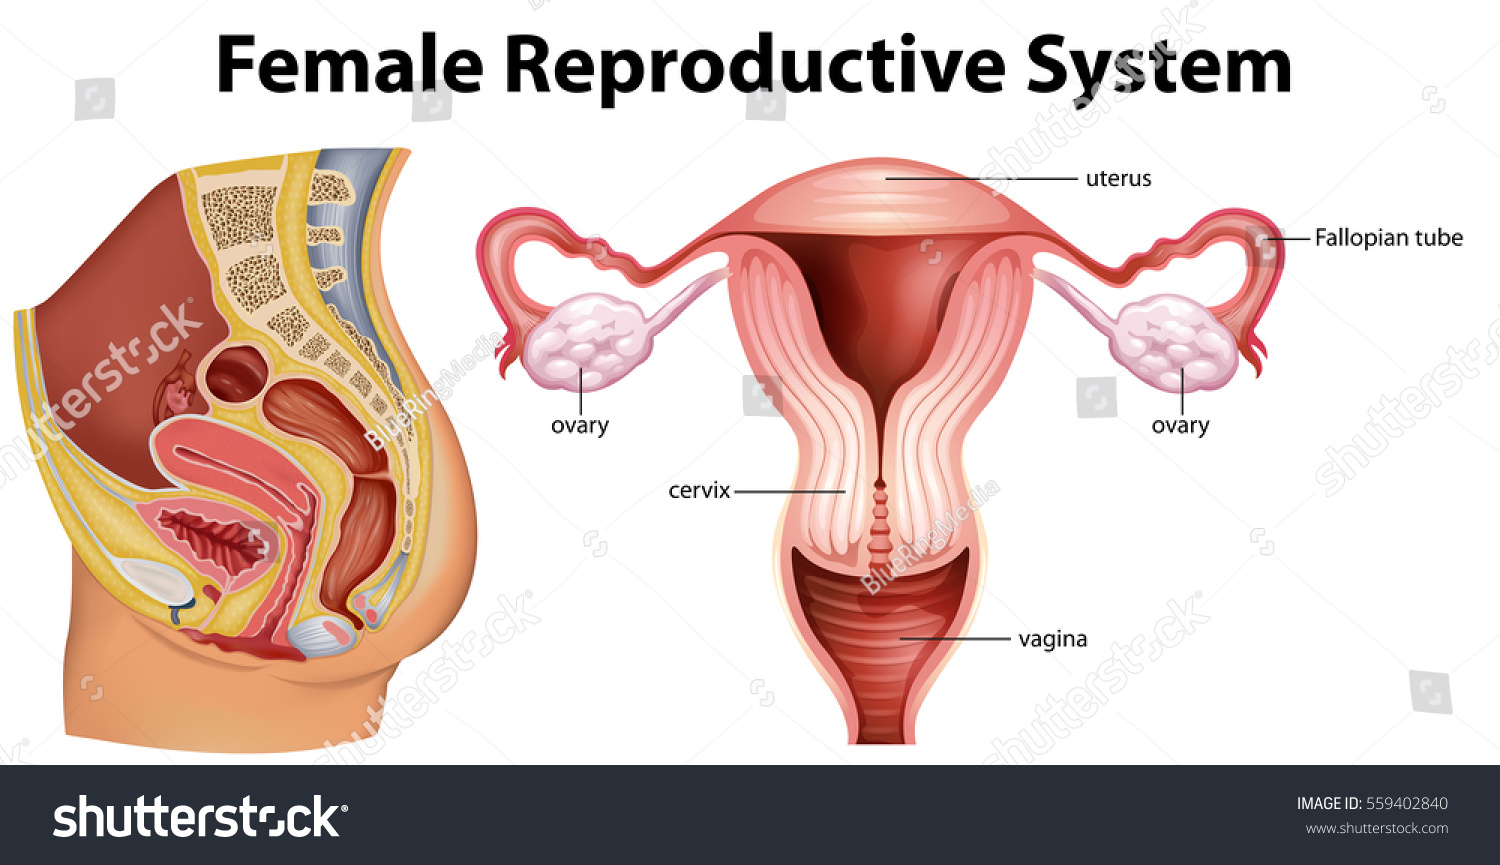 Diagram Showing Female Reproductive System Illustration Stock Vector